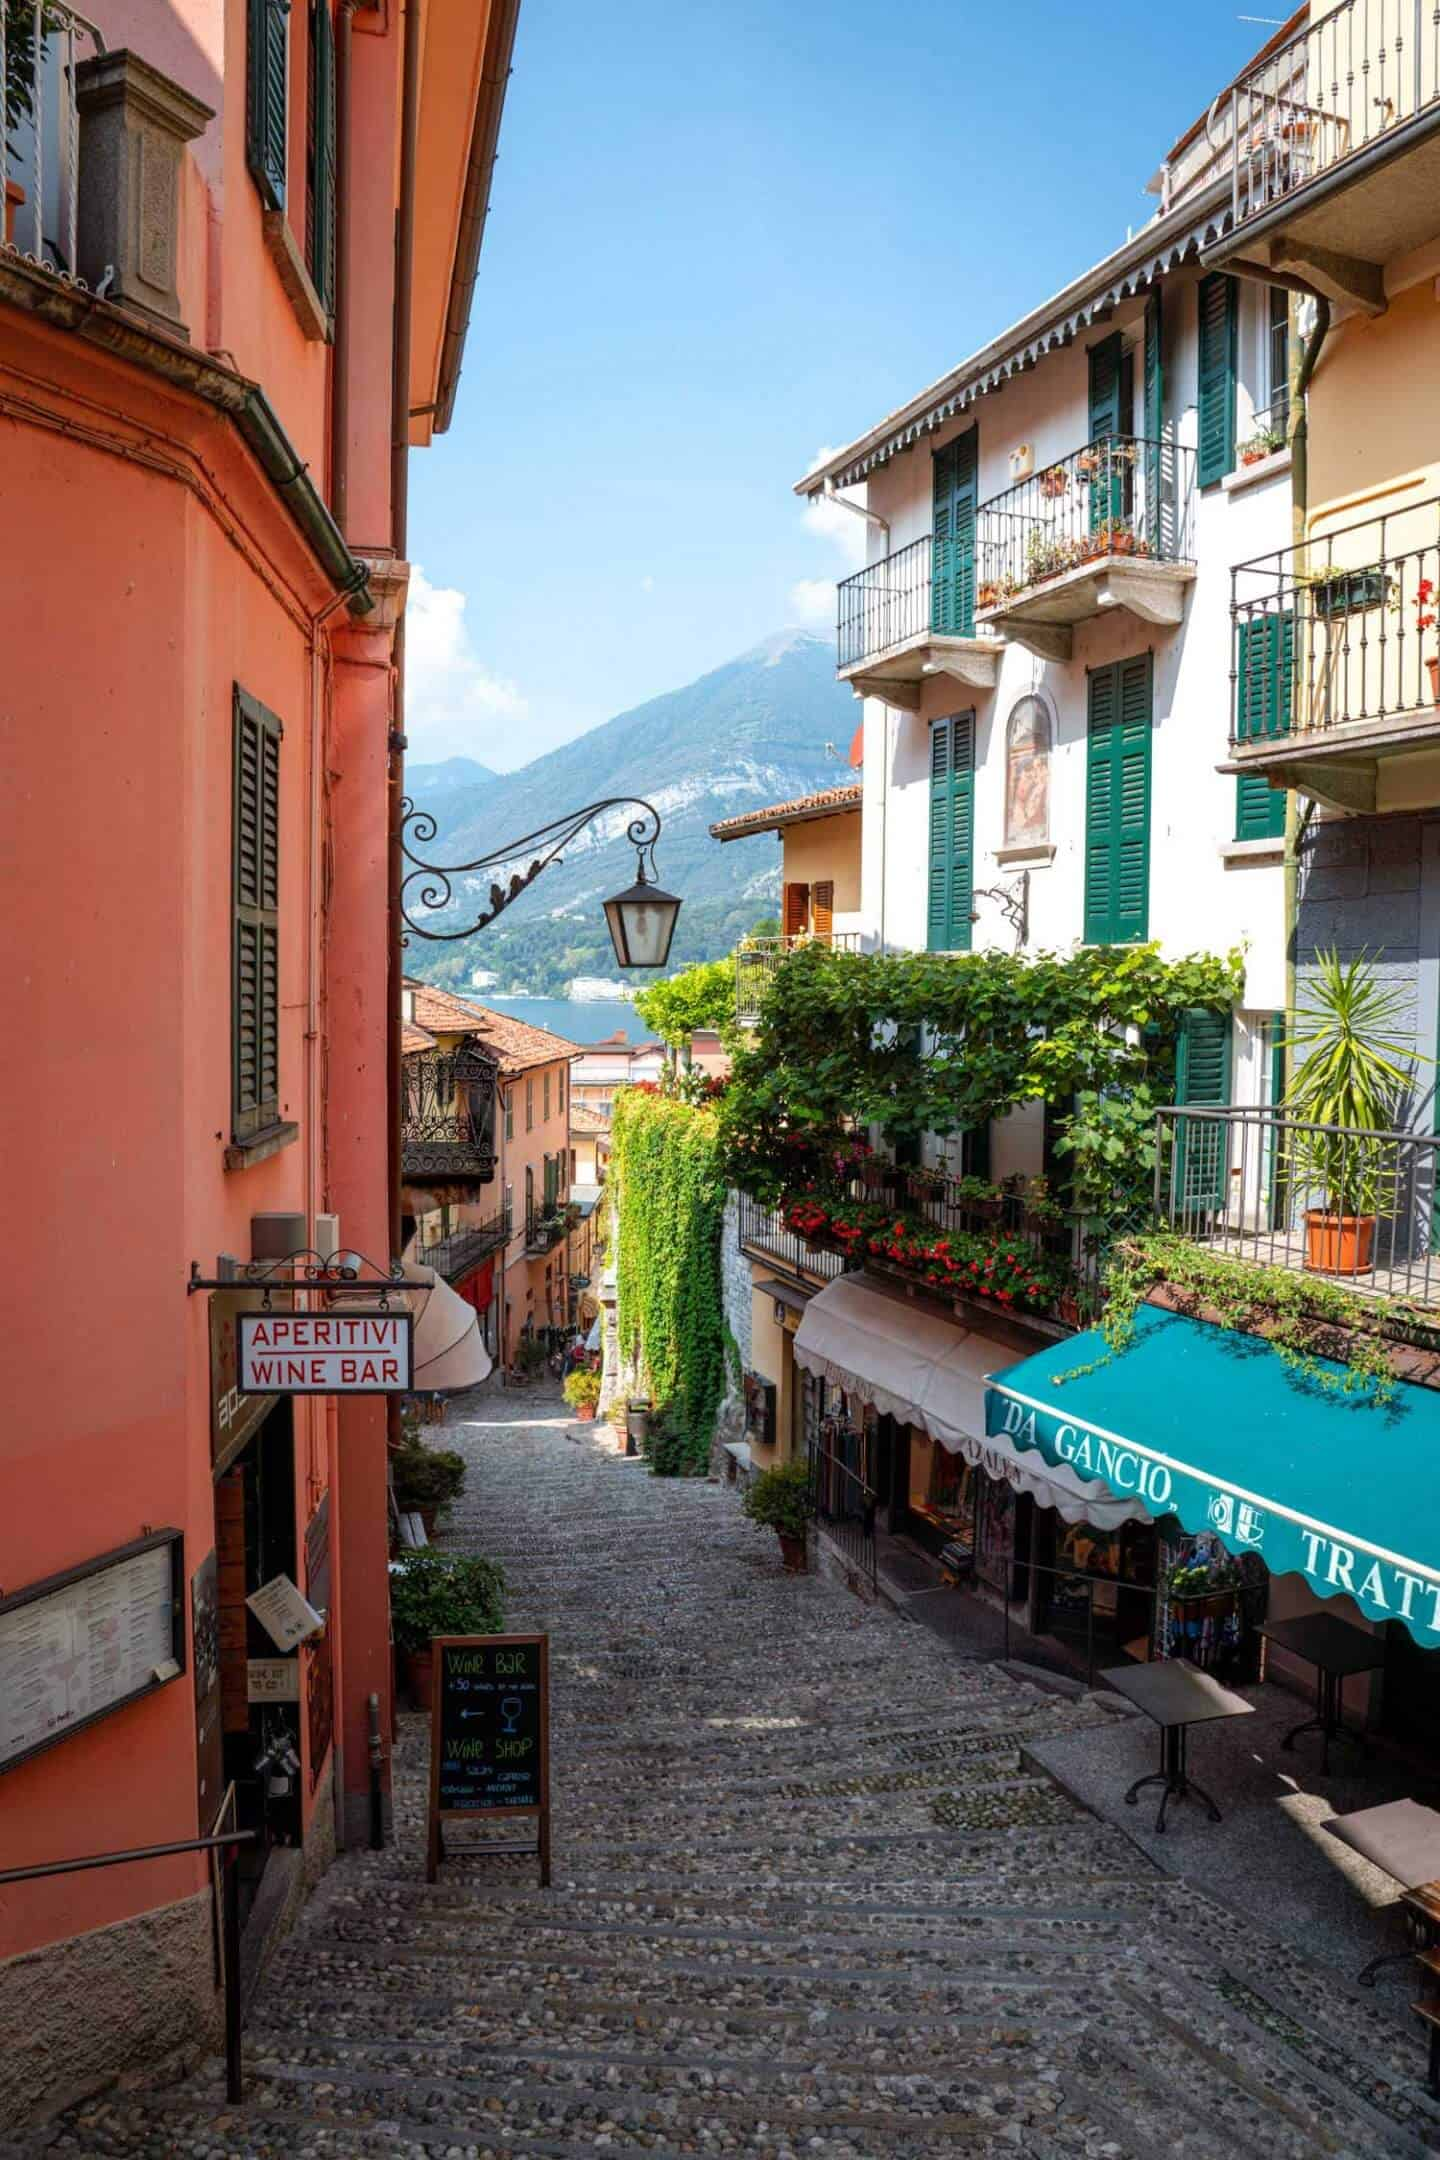 Salita Serbelloni steps are one of the most iconic locations in Bellagio and shouldn't be missed on a day trip Milan to Lake Como